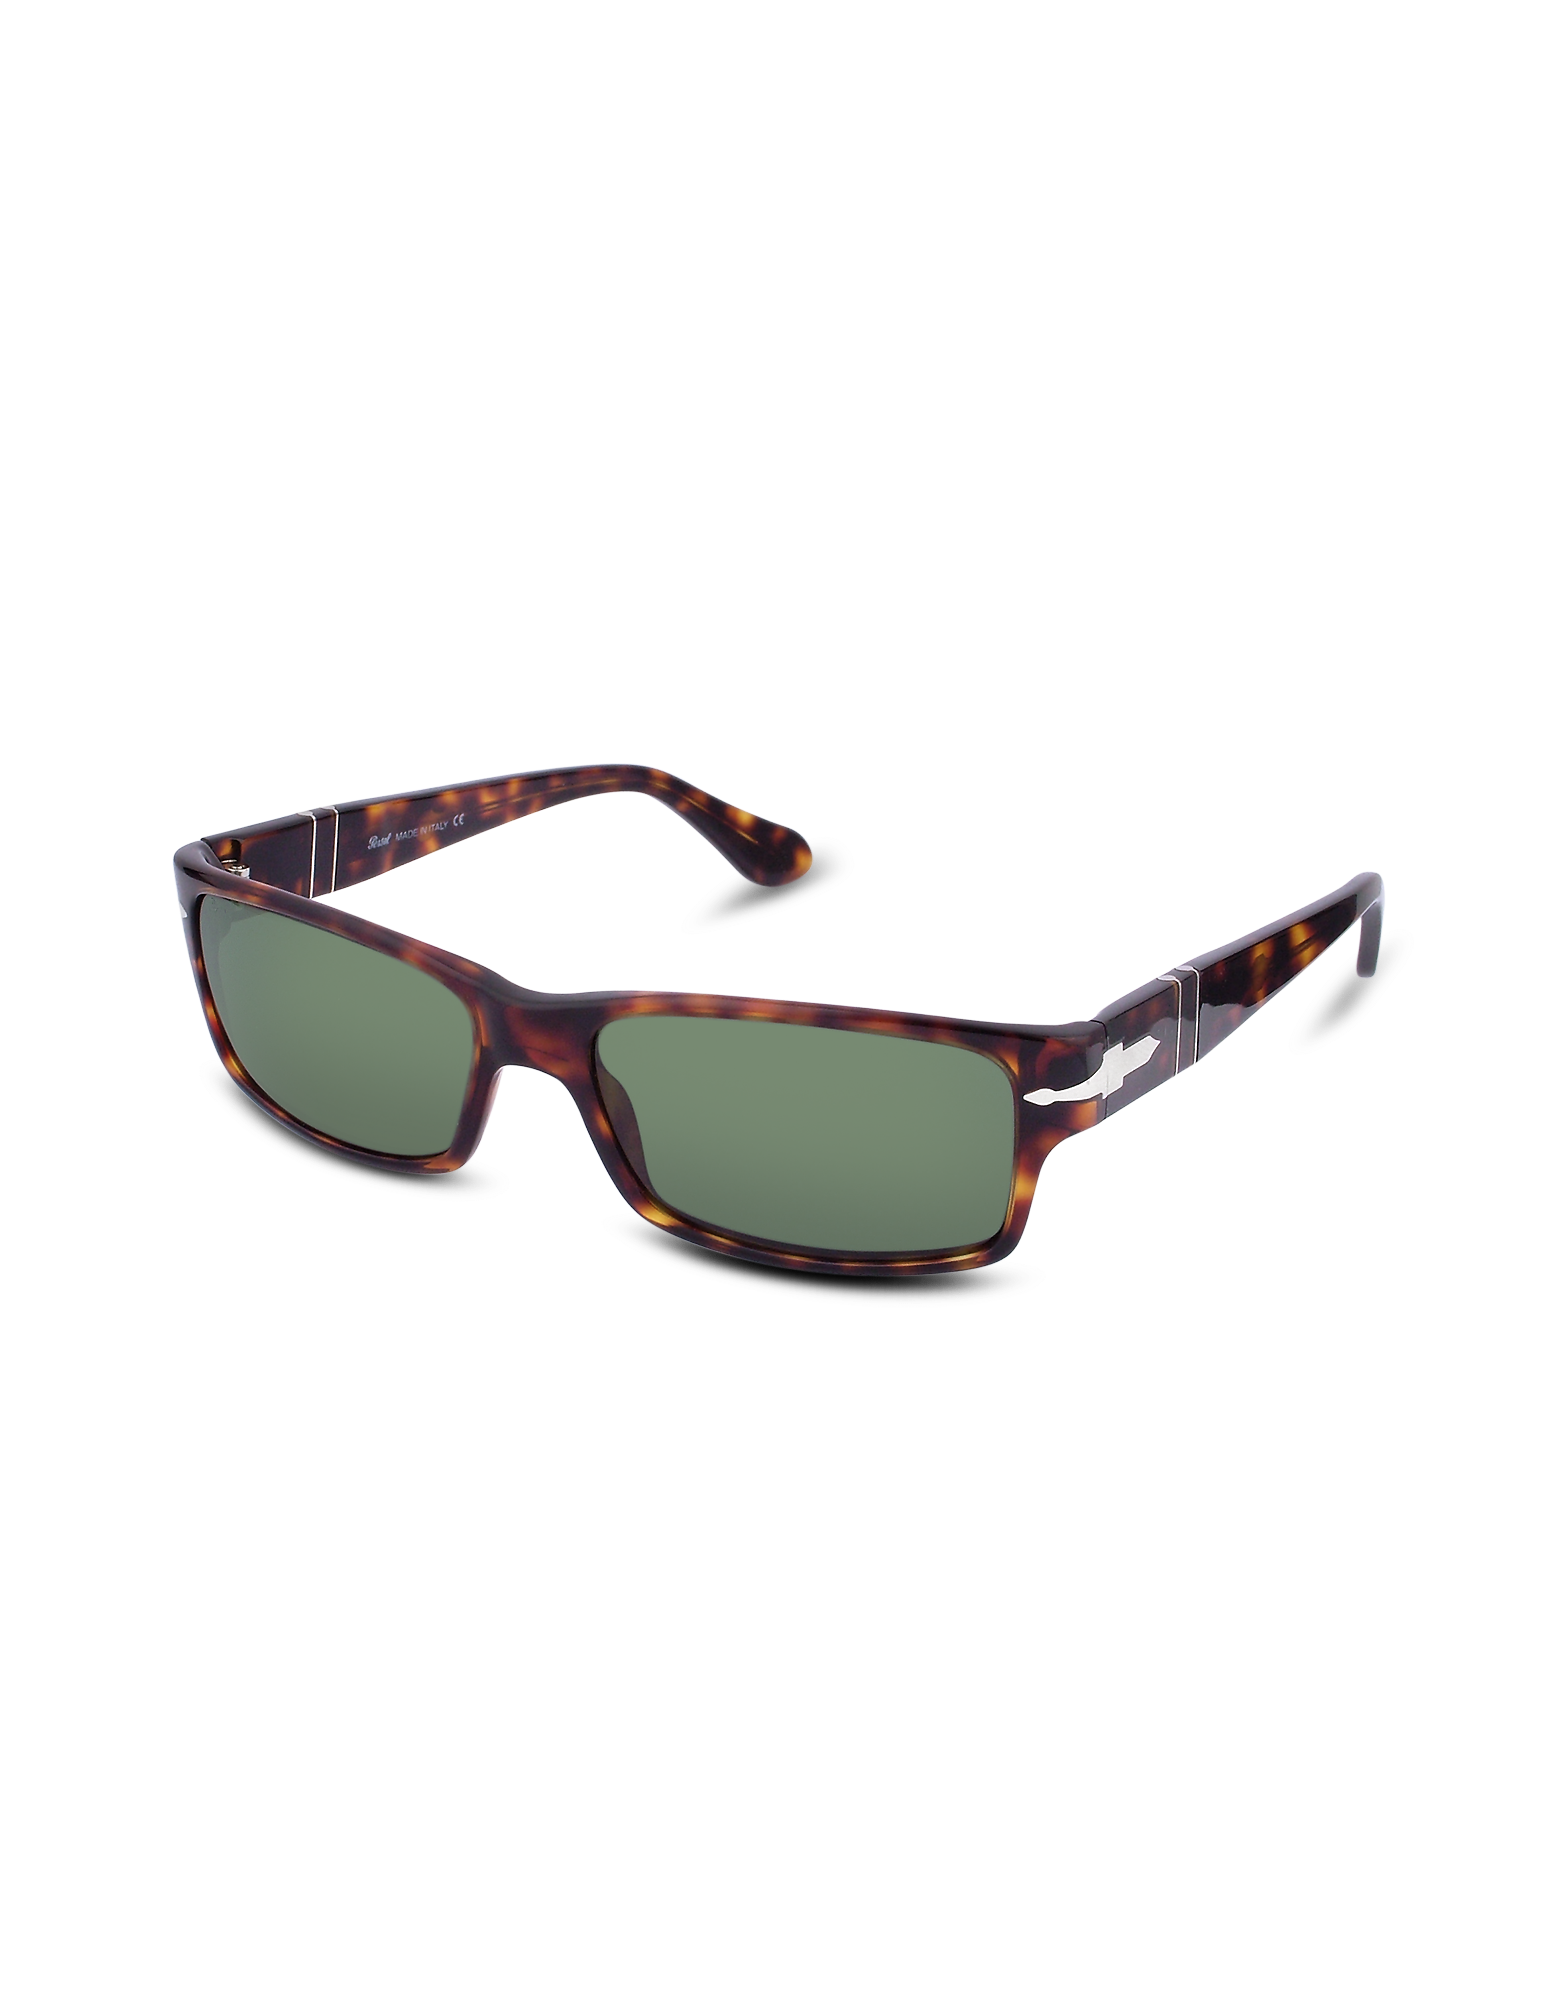 Image of Arrow Signature Rectangular Plastic Sunglasses